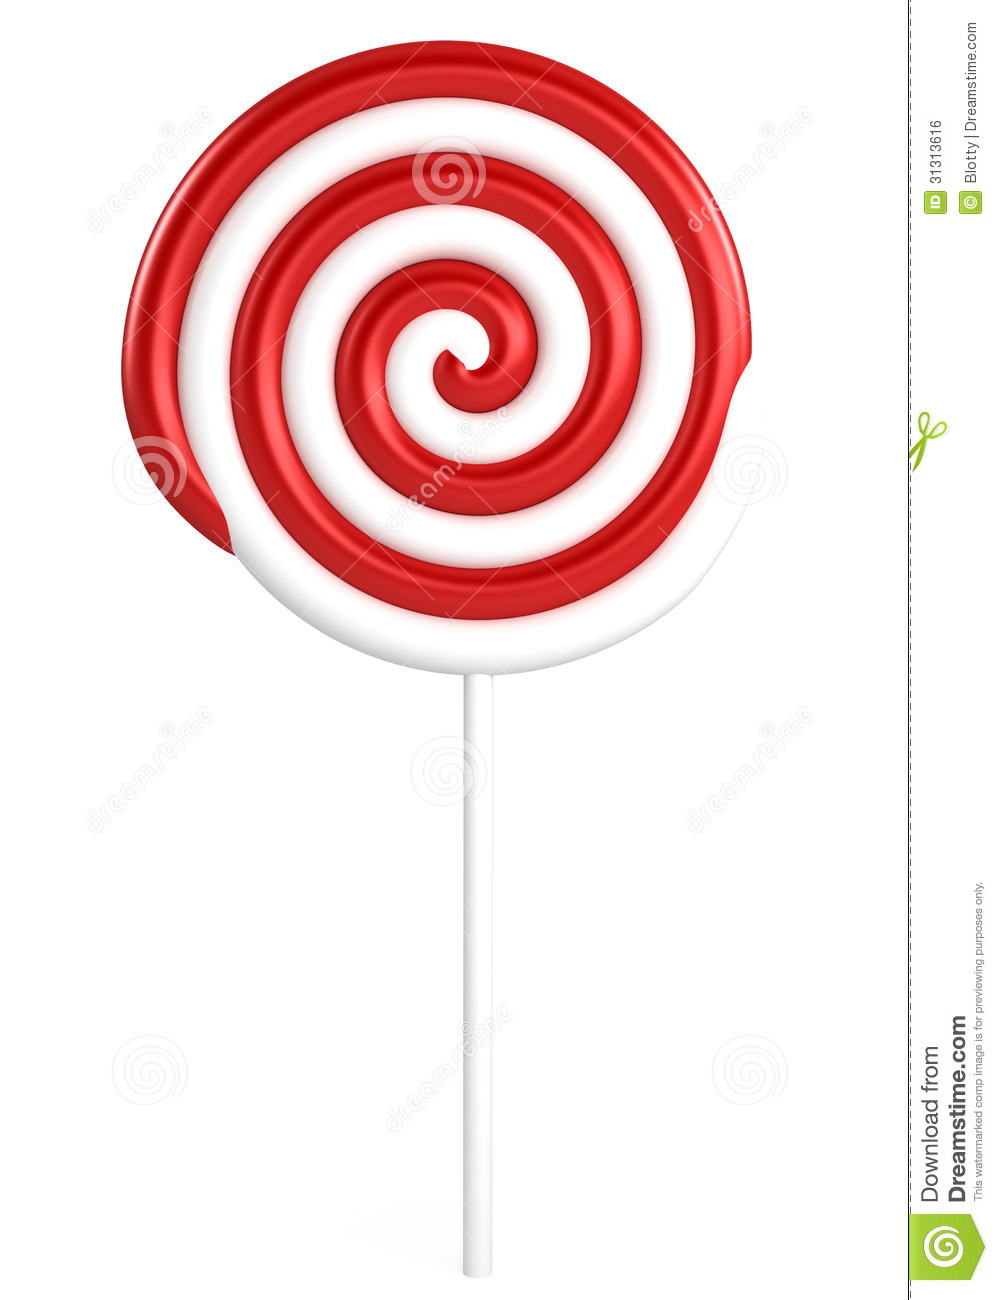 Red Yellow And Green Lollipop Royalty Free Stock Image